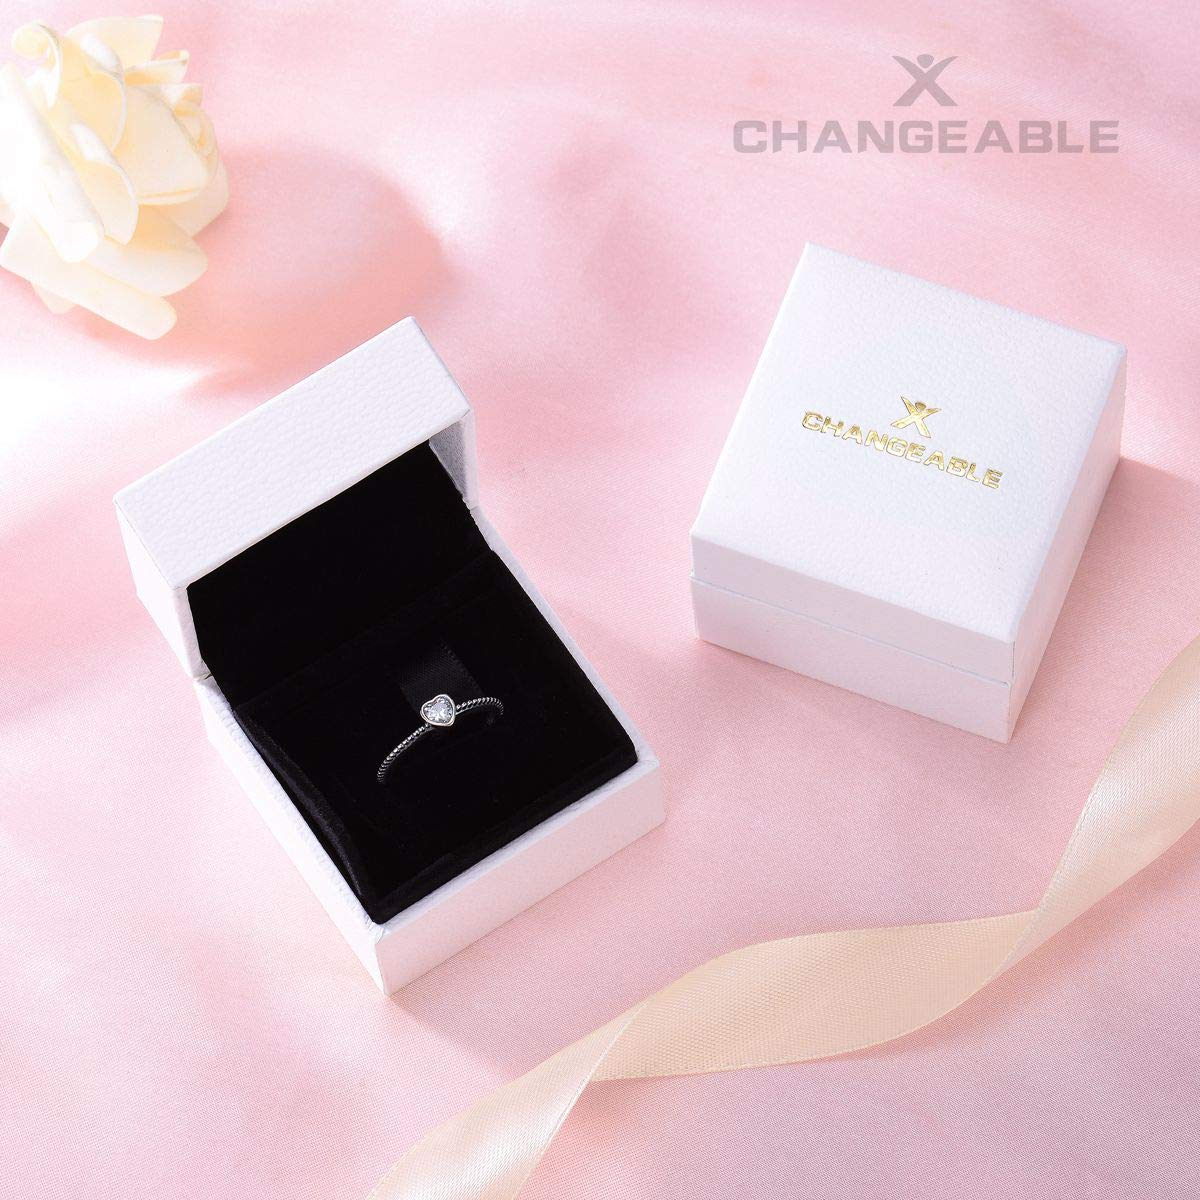 Changeable Solitaire Promise Rings - White Crystals, Solid 925 Sterling Silver # Size 6 (Soul Heart) by Changeable (Image #7)